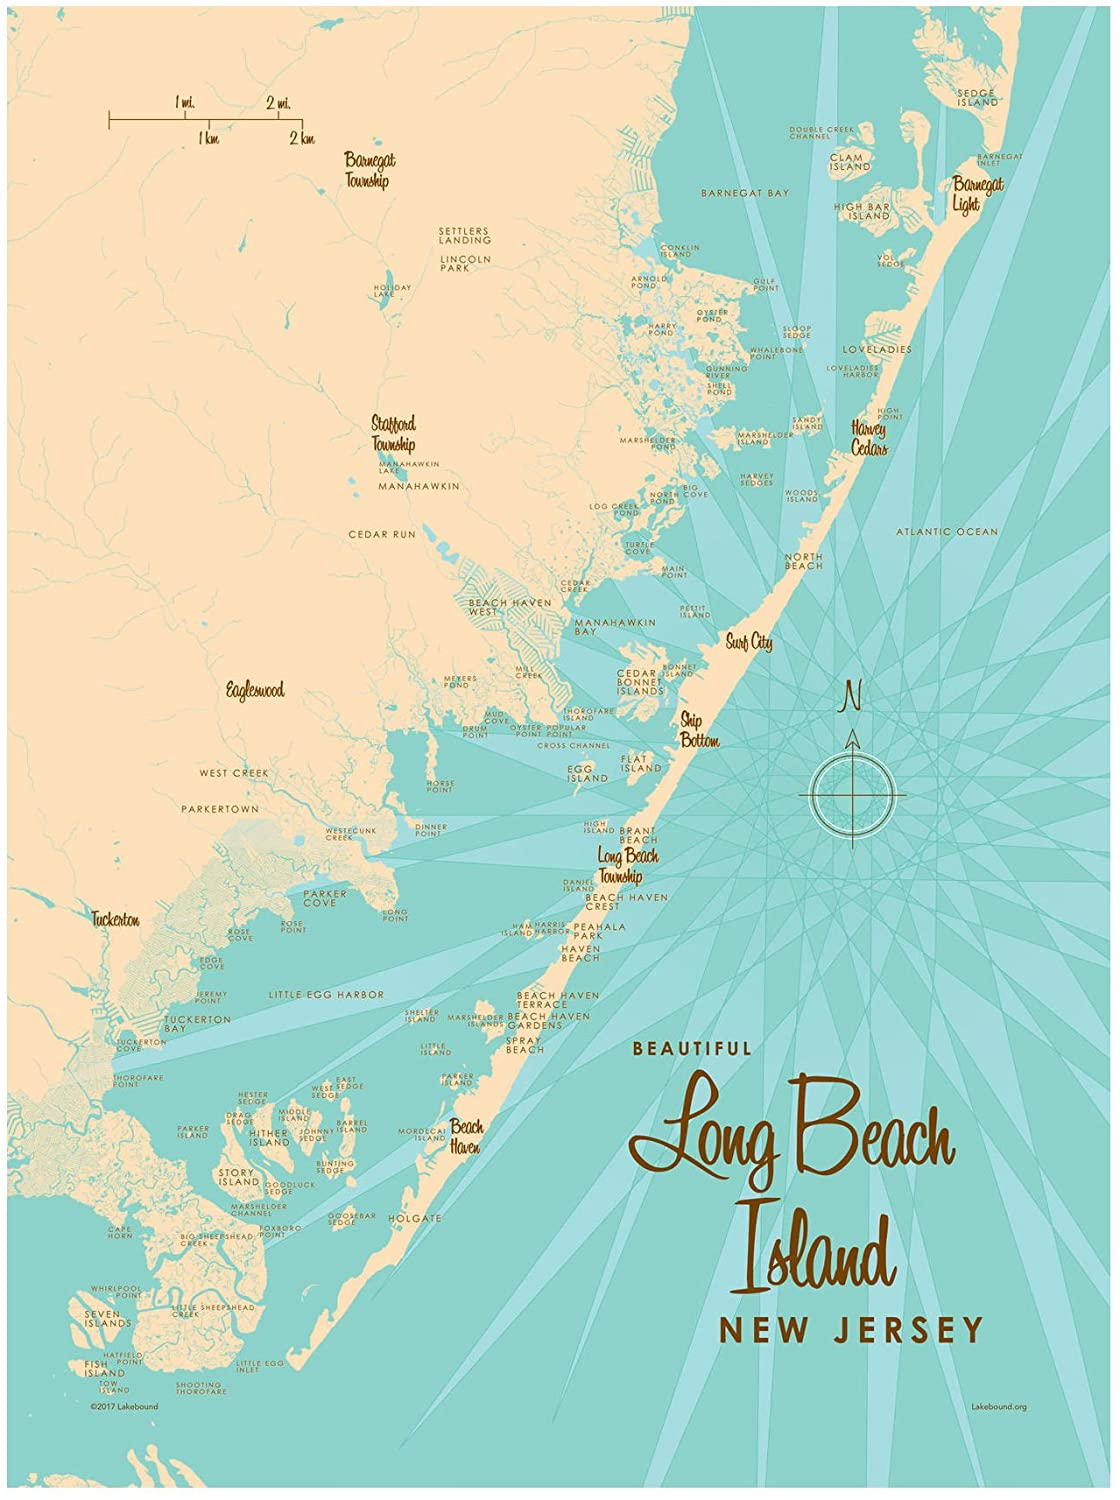 Long Beach Island, New Jersey Map Giclee Art Print Poster by Lakebound 9